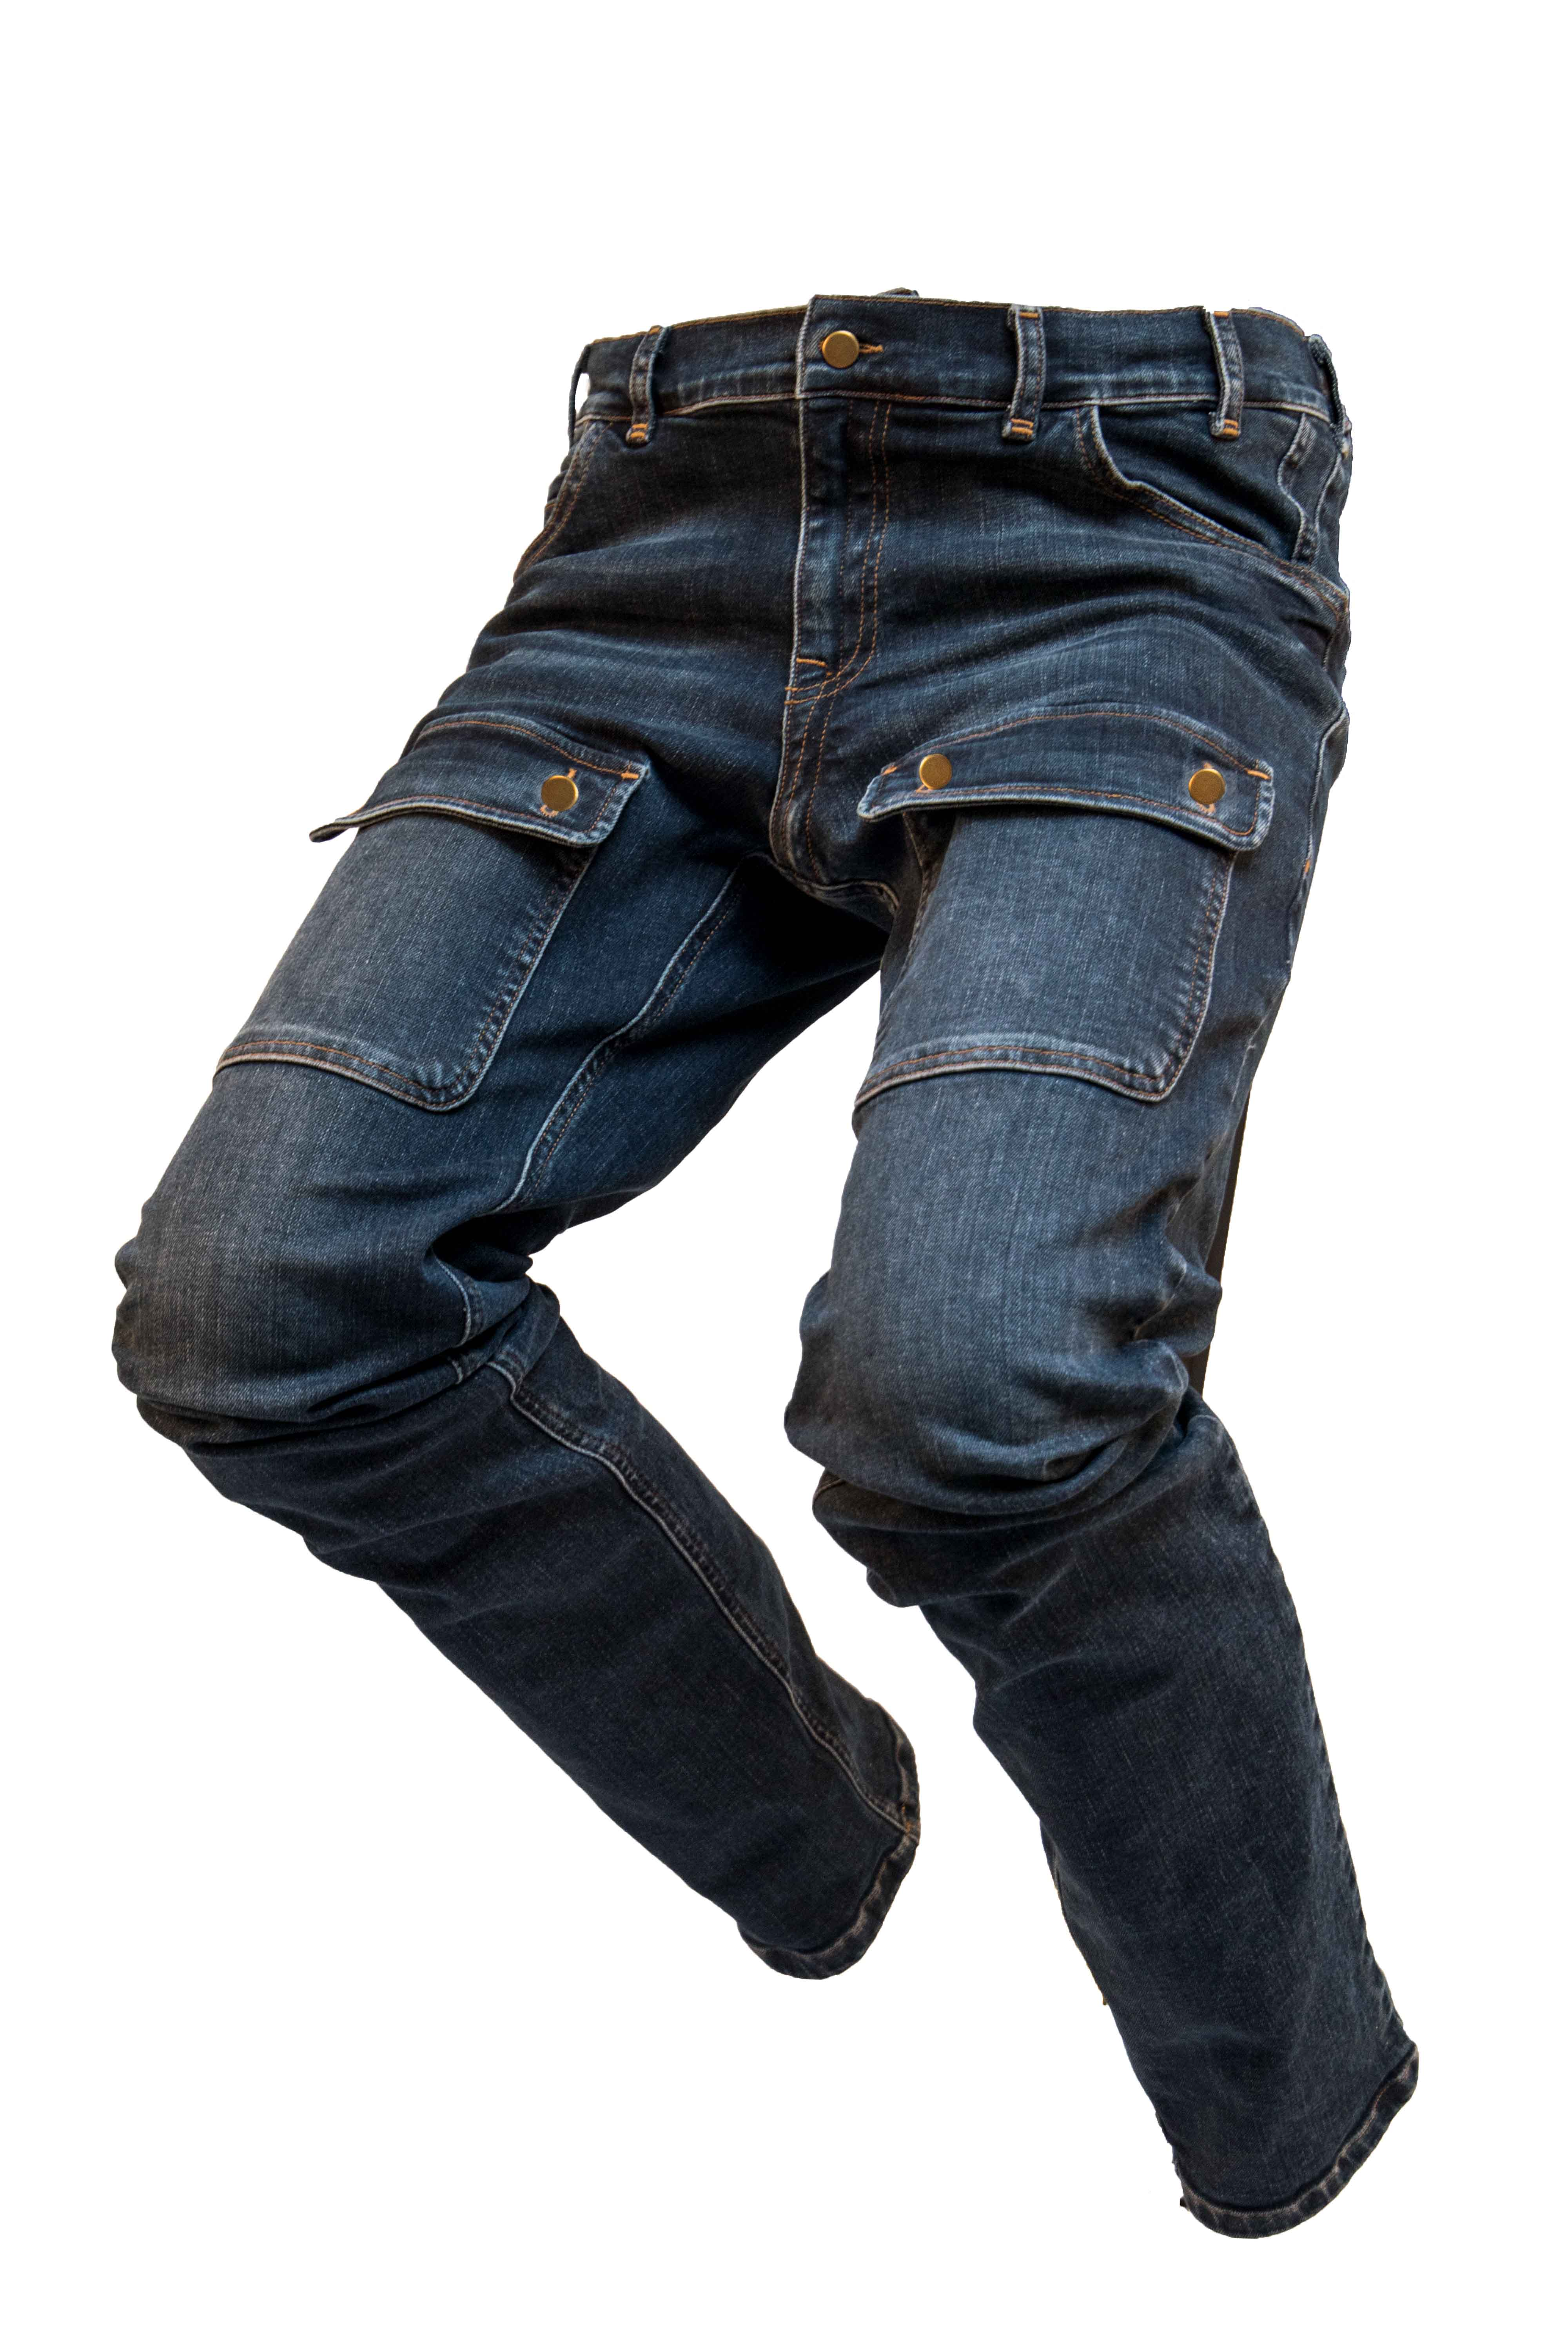 6dadcfd6858432 Herren-Jeans Fashion with pockets MIKE 10834   Basic   Pants   Men ...